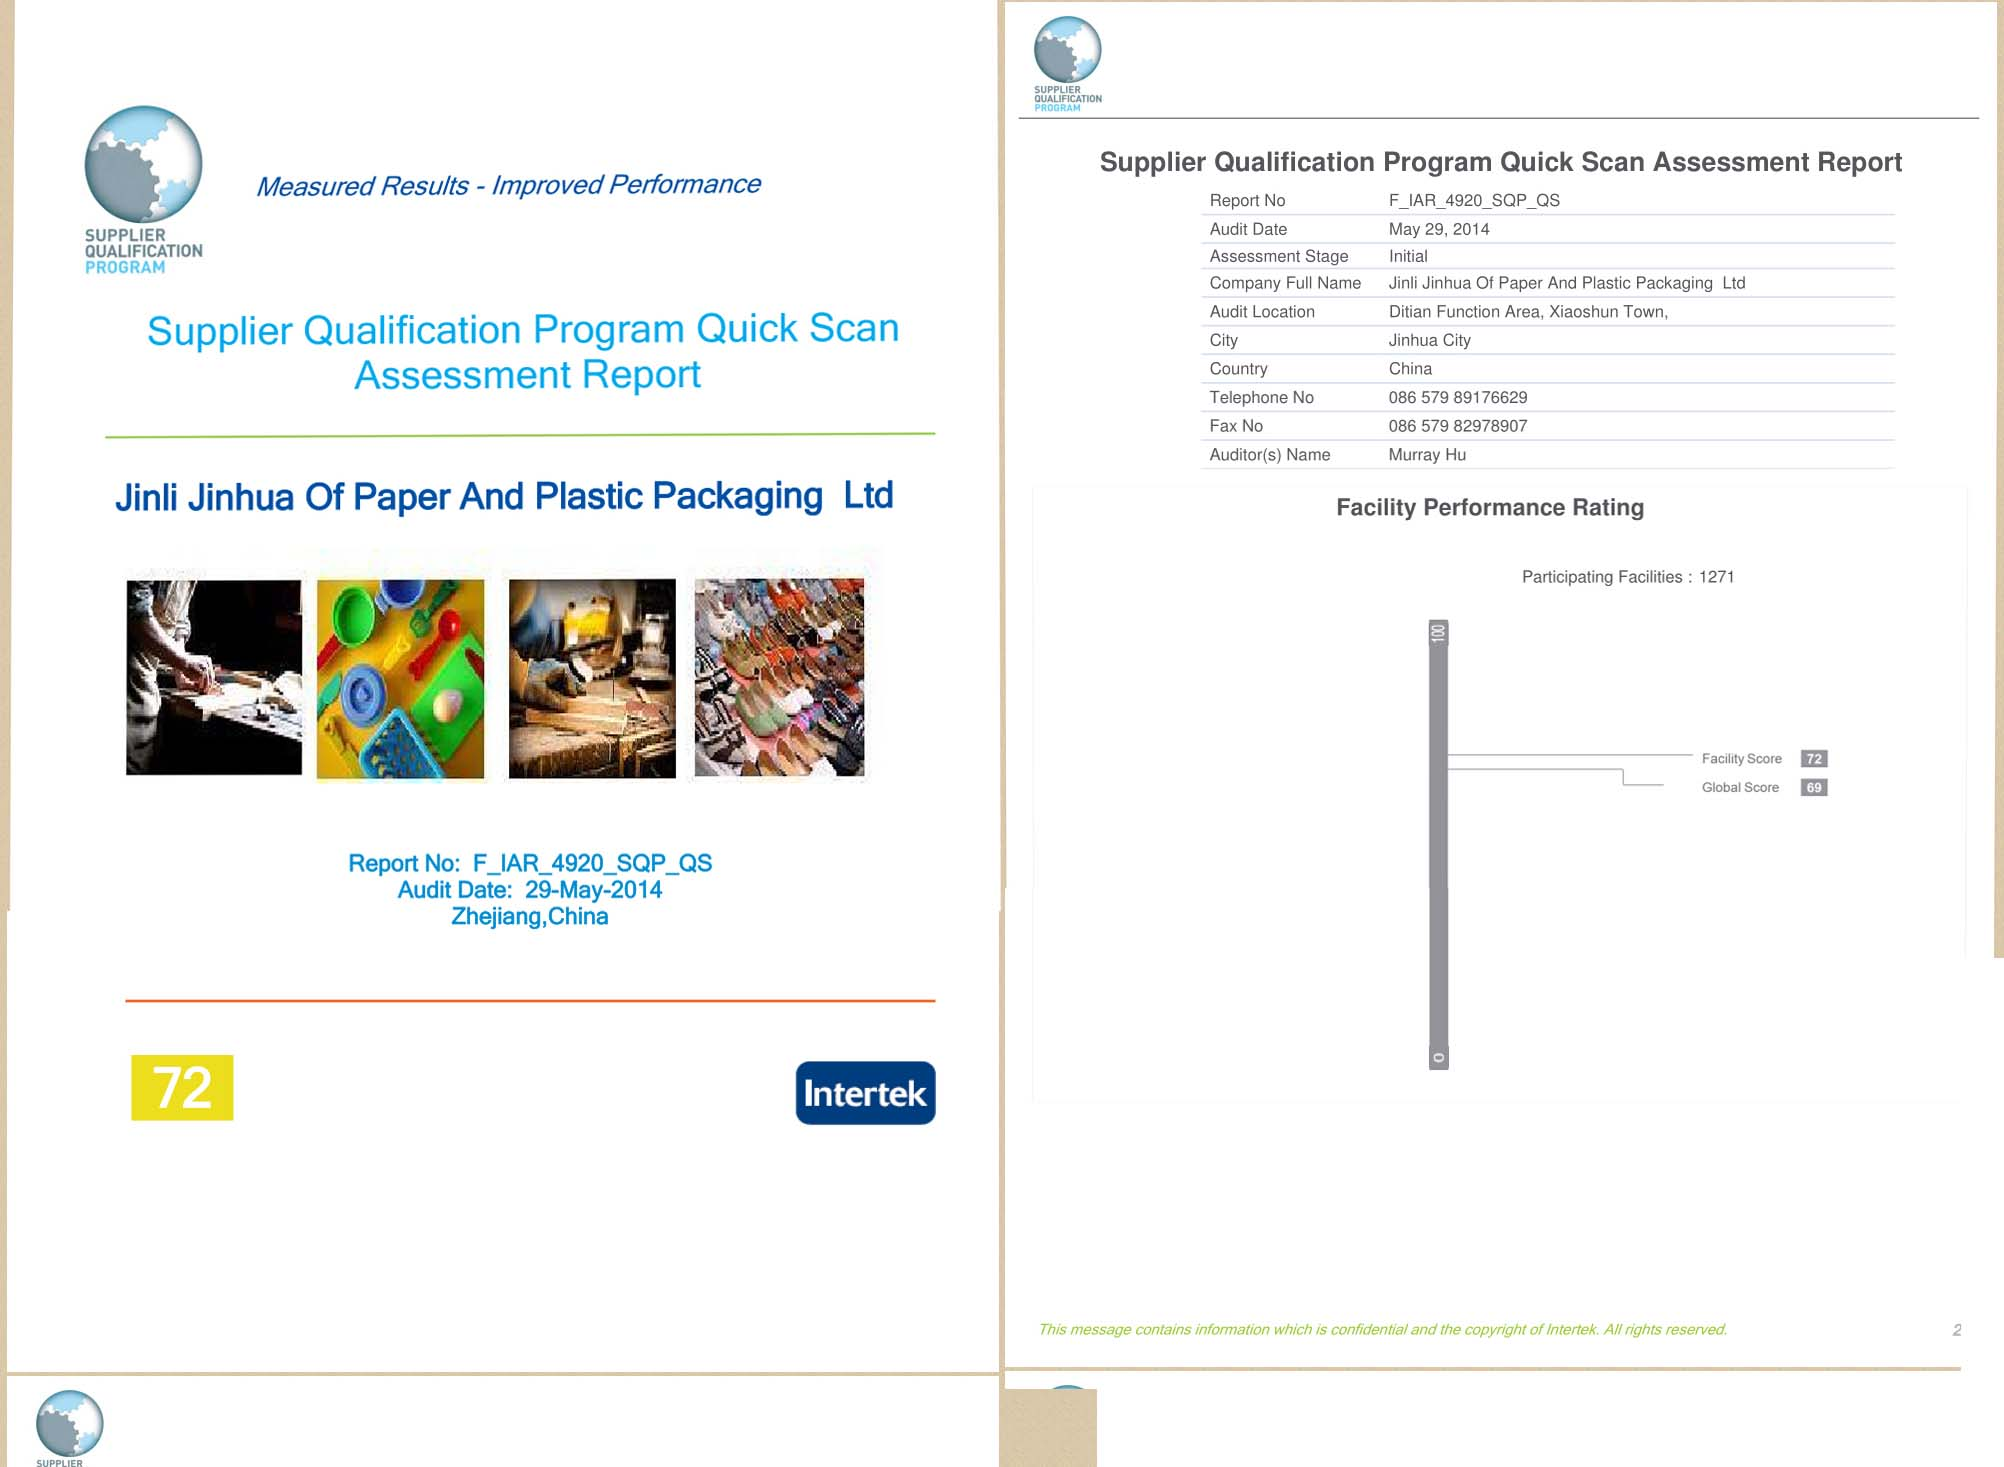 Supplier Qualification Program Quick Scan Assessment Report